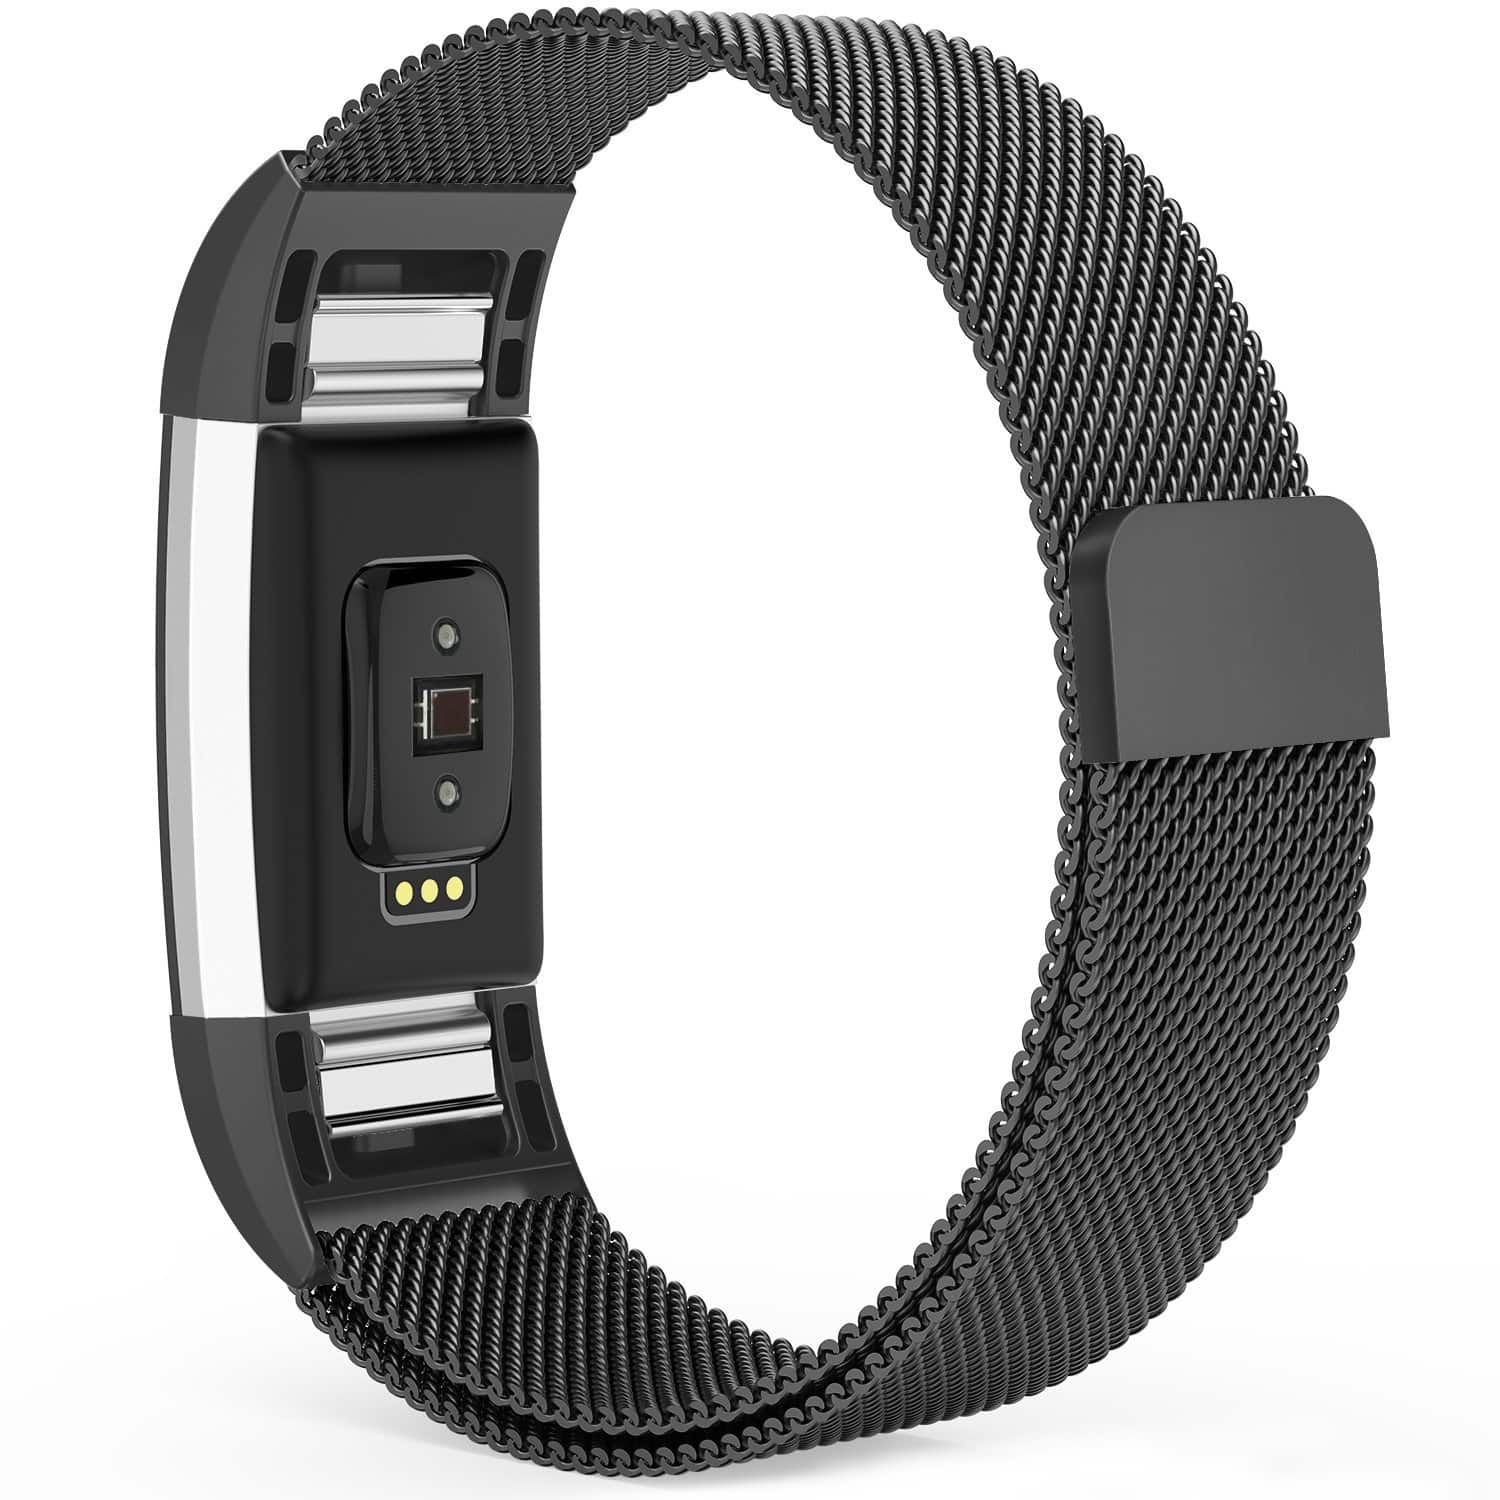 Fitbit Charge 2 Milanese Loop Replacement Bands (Various Sizes) $5.98